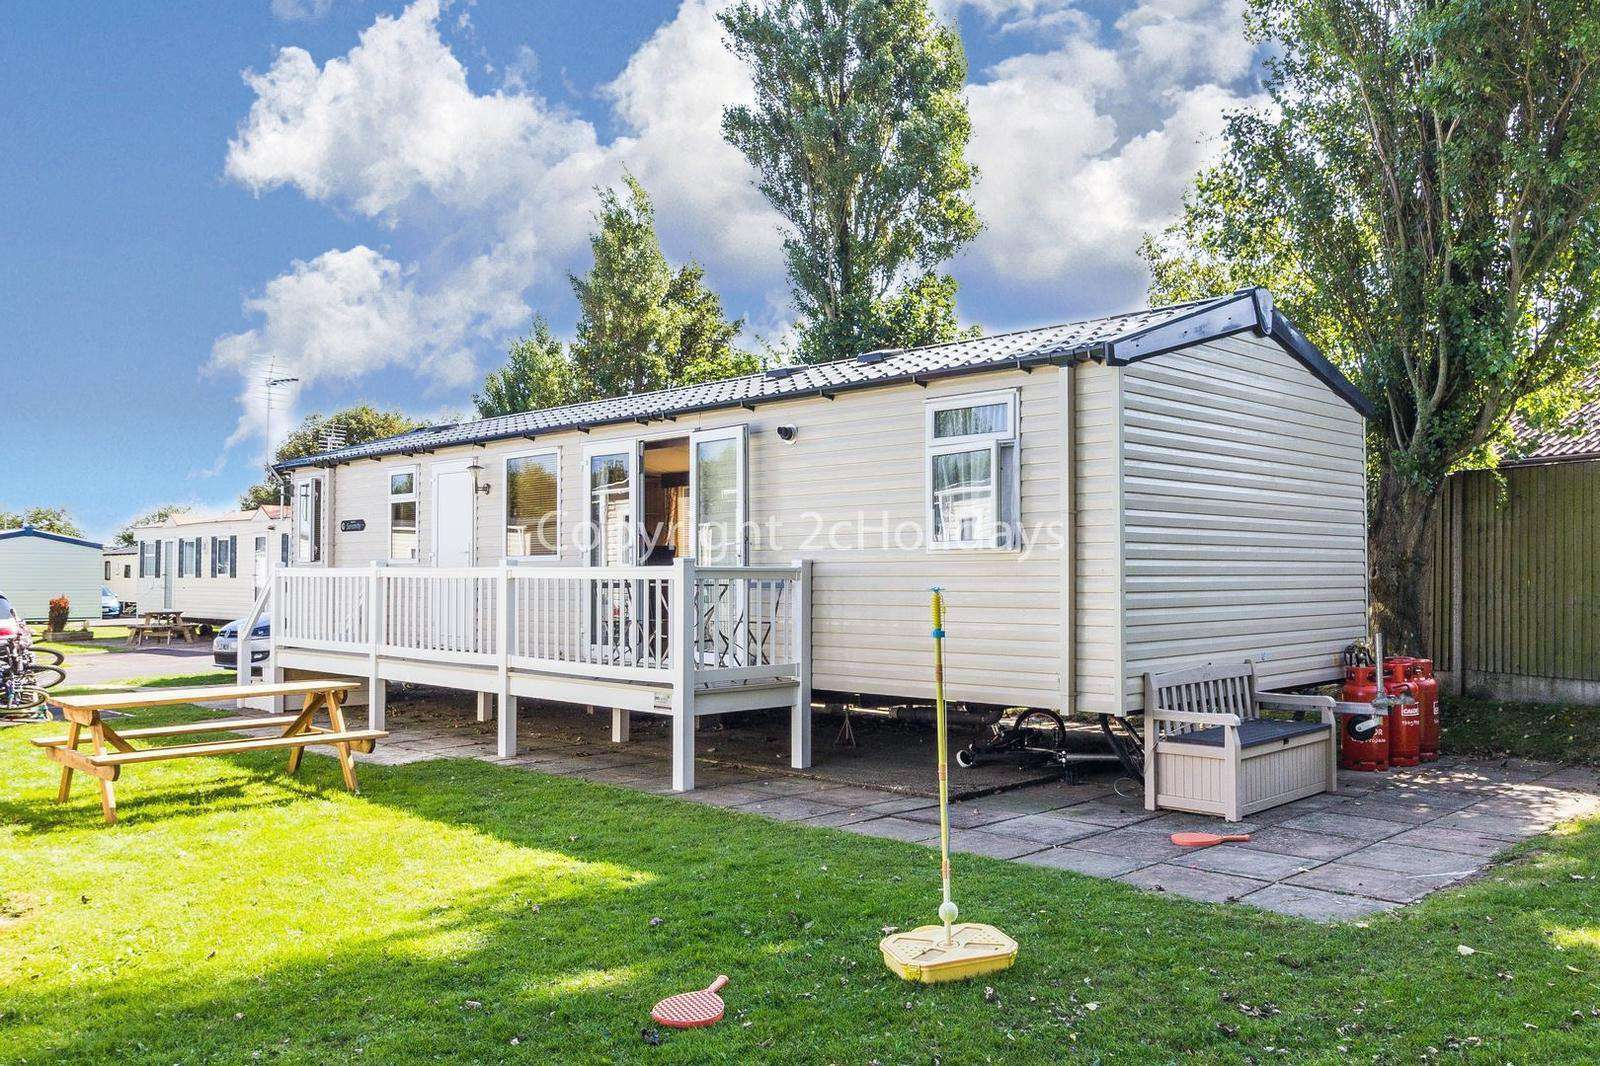 3 bed accommodation with decking